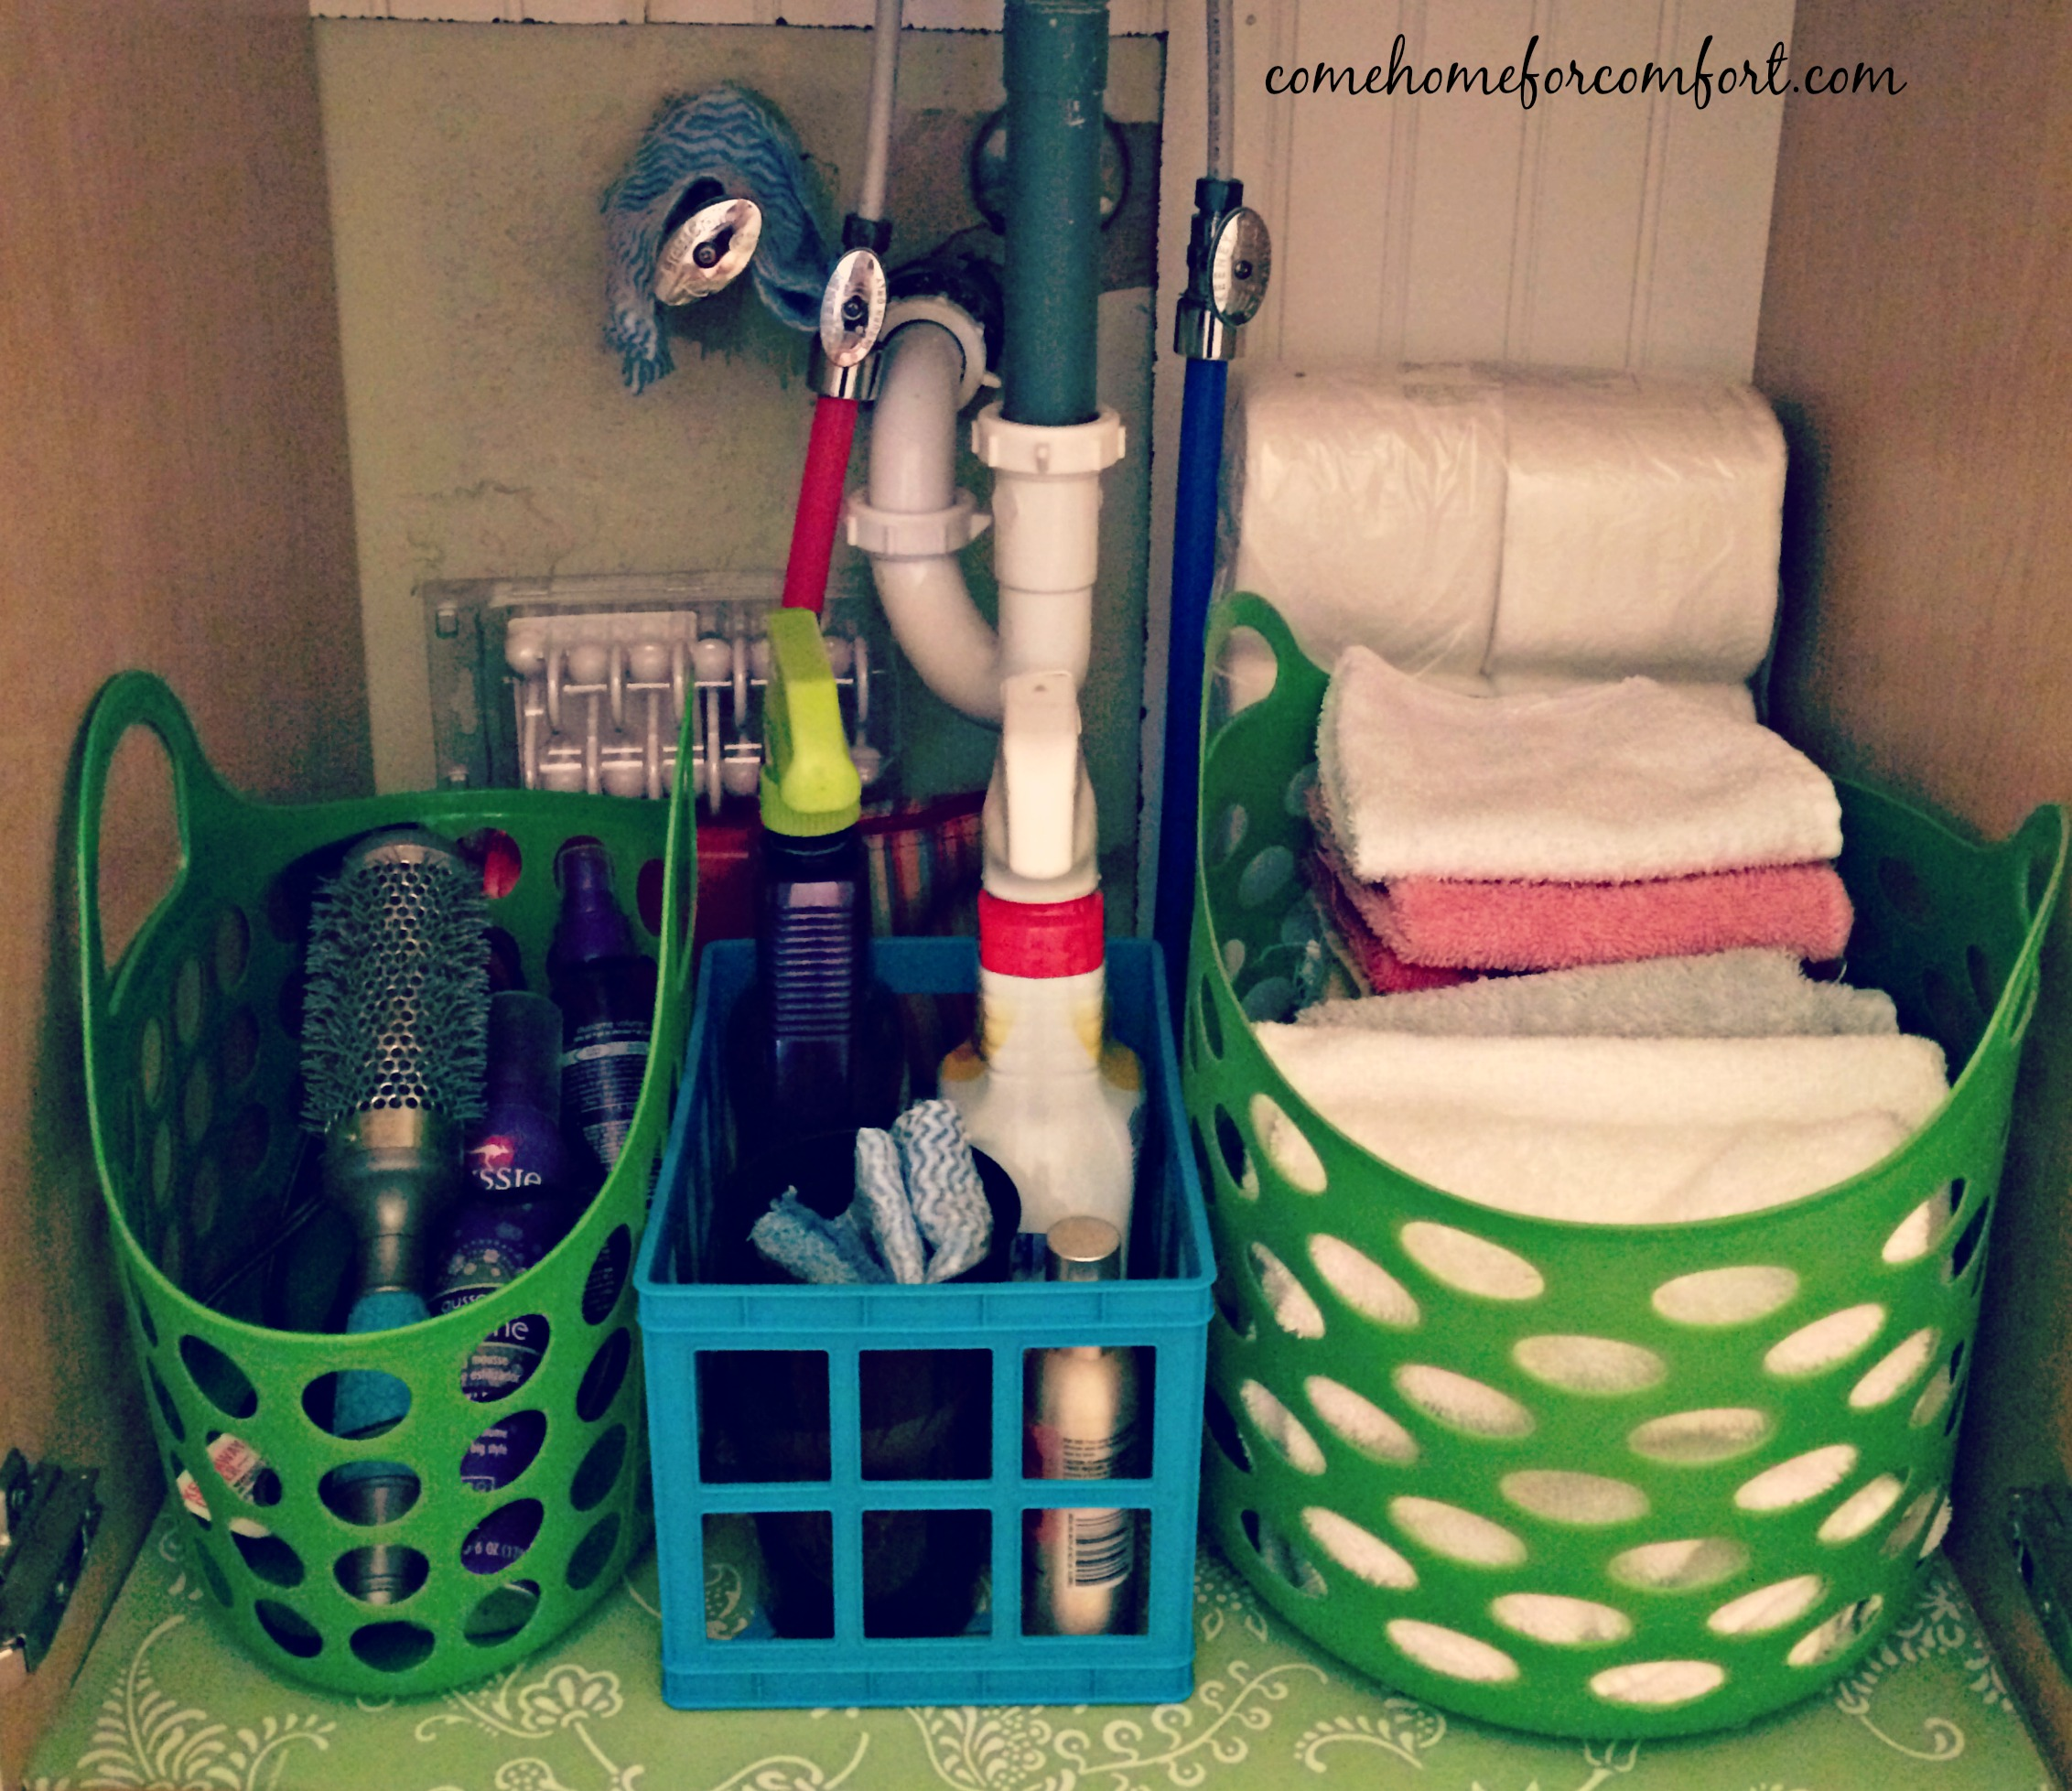 Bathroom organizers under sink - How To Organize Under The Bathroom Sink 3 Come Home For Comfort